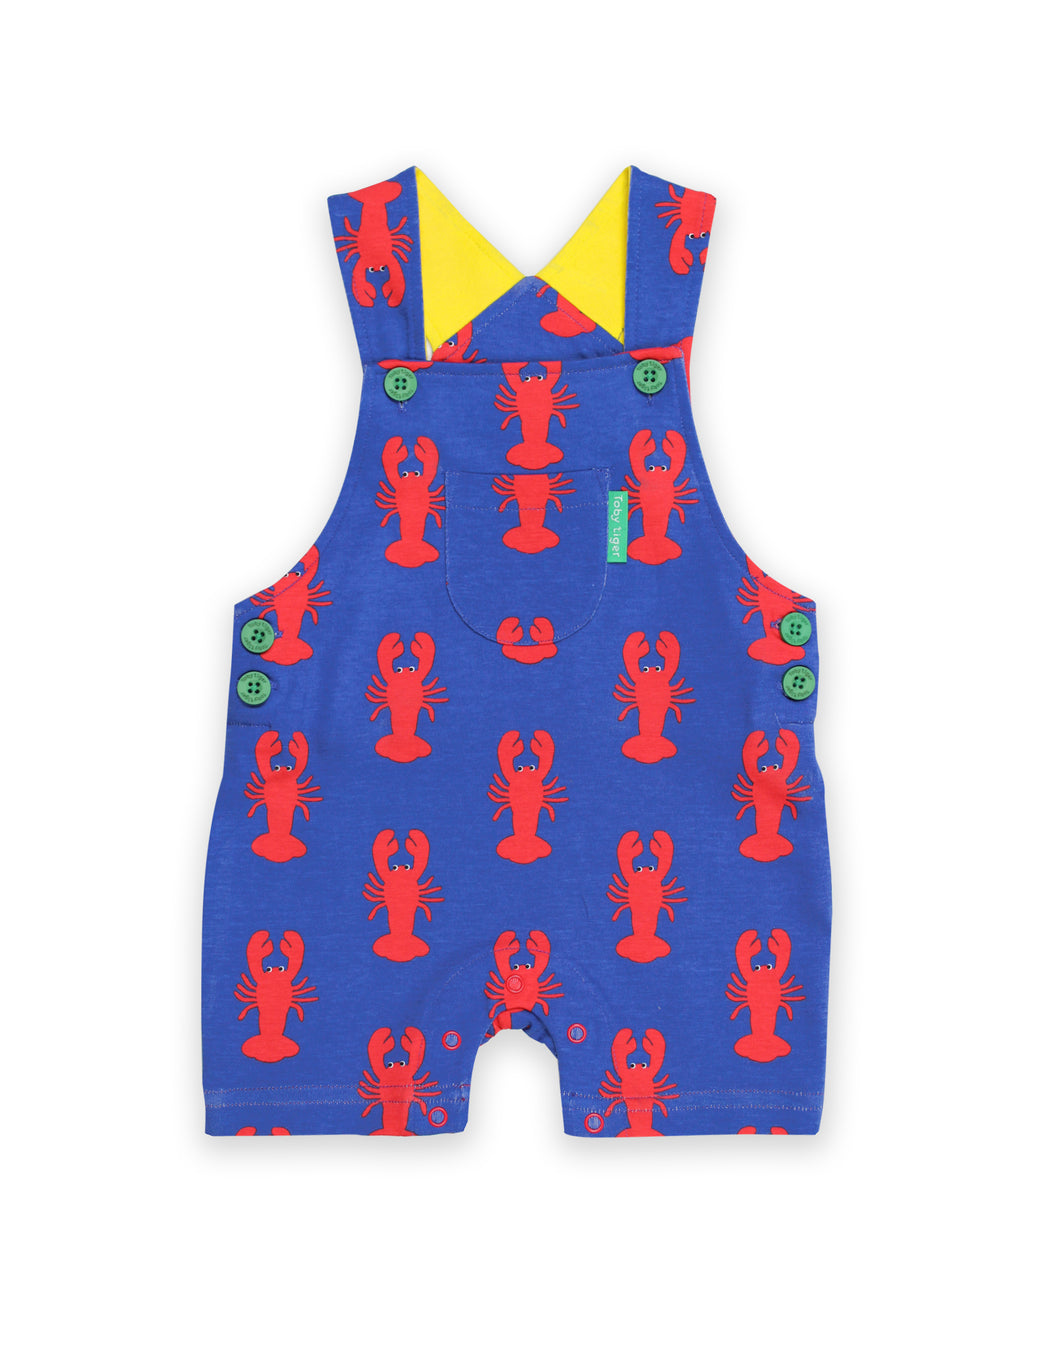 Lobster Print Dungaree Shorts